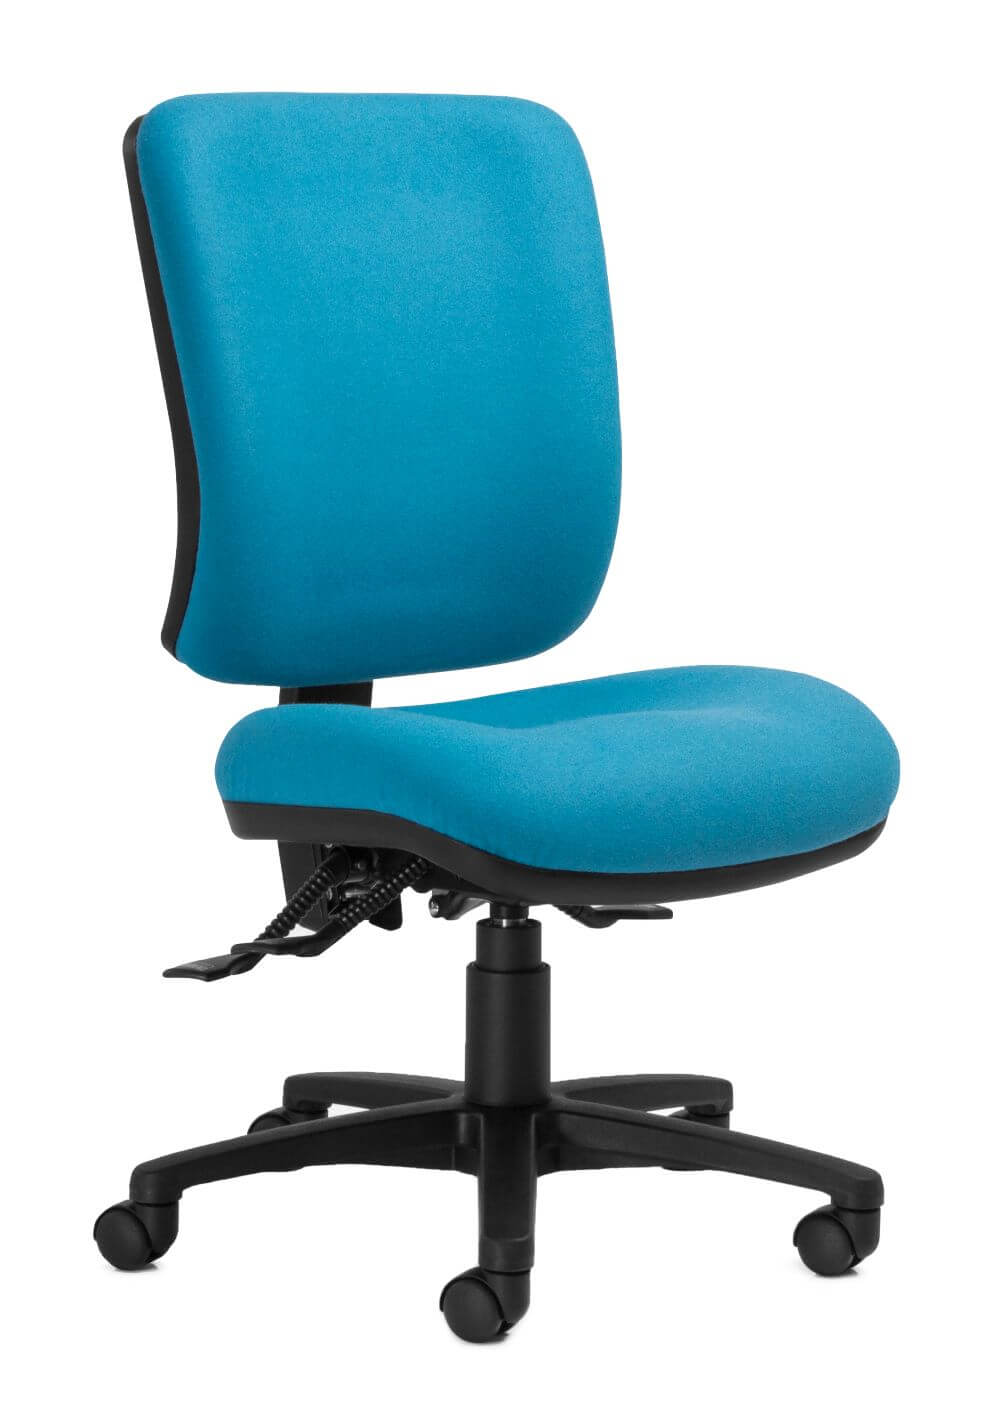 Rexa high back in light blue with black 5 star base and lever front 45 degree view